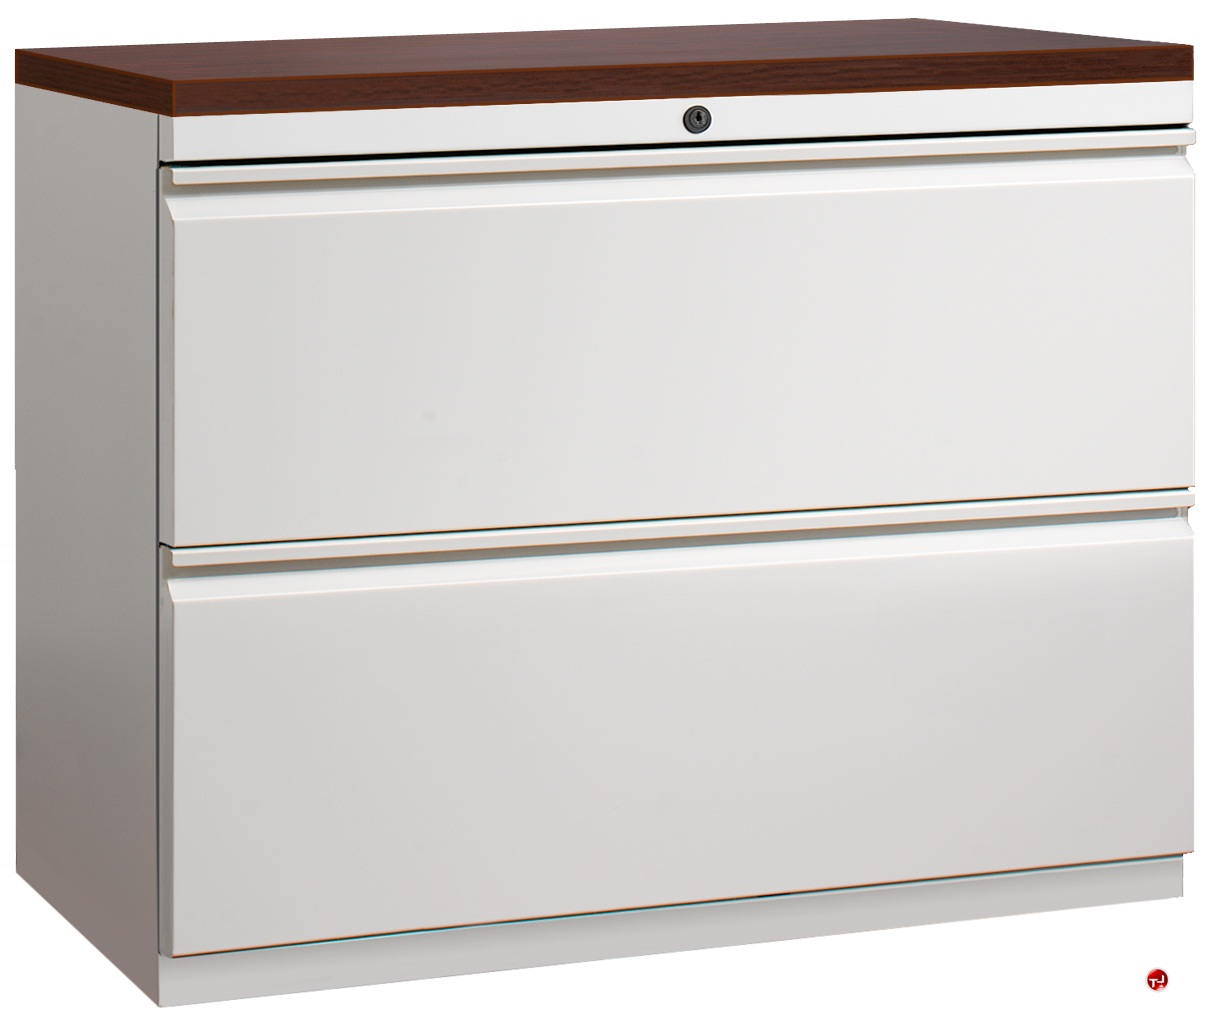 The Office Leader 2 Drawer Trace Lateral File Cabinet 36